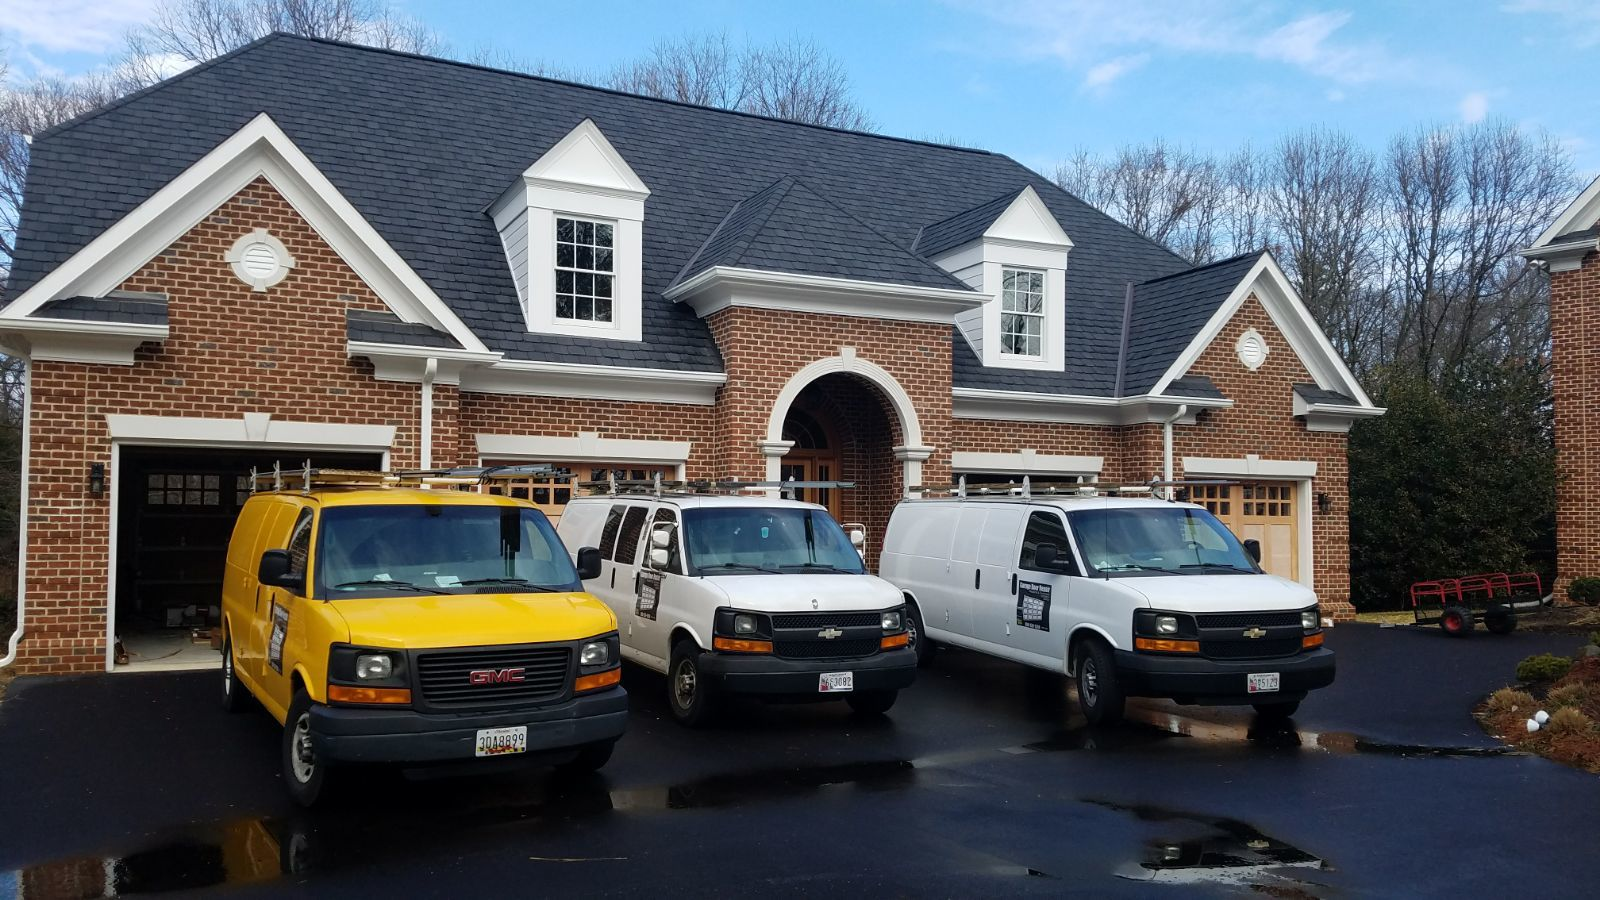 Champions Garage Door Repair In Ellicott City Is Your Trusted Local Garage  Door Repair And Installation Company. If You Require Any Type Of Garage  Service, ...